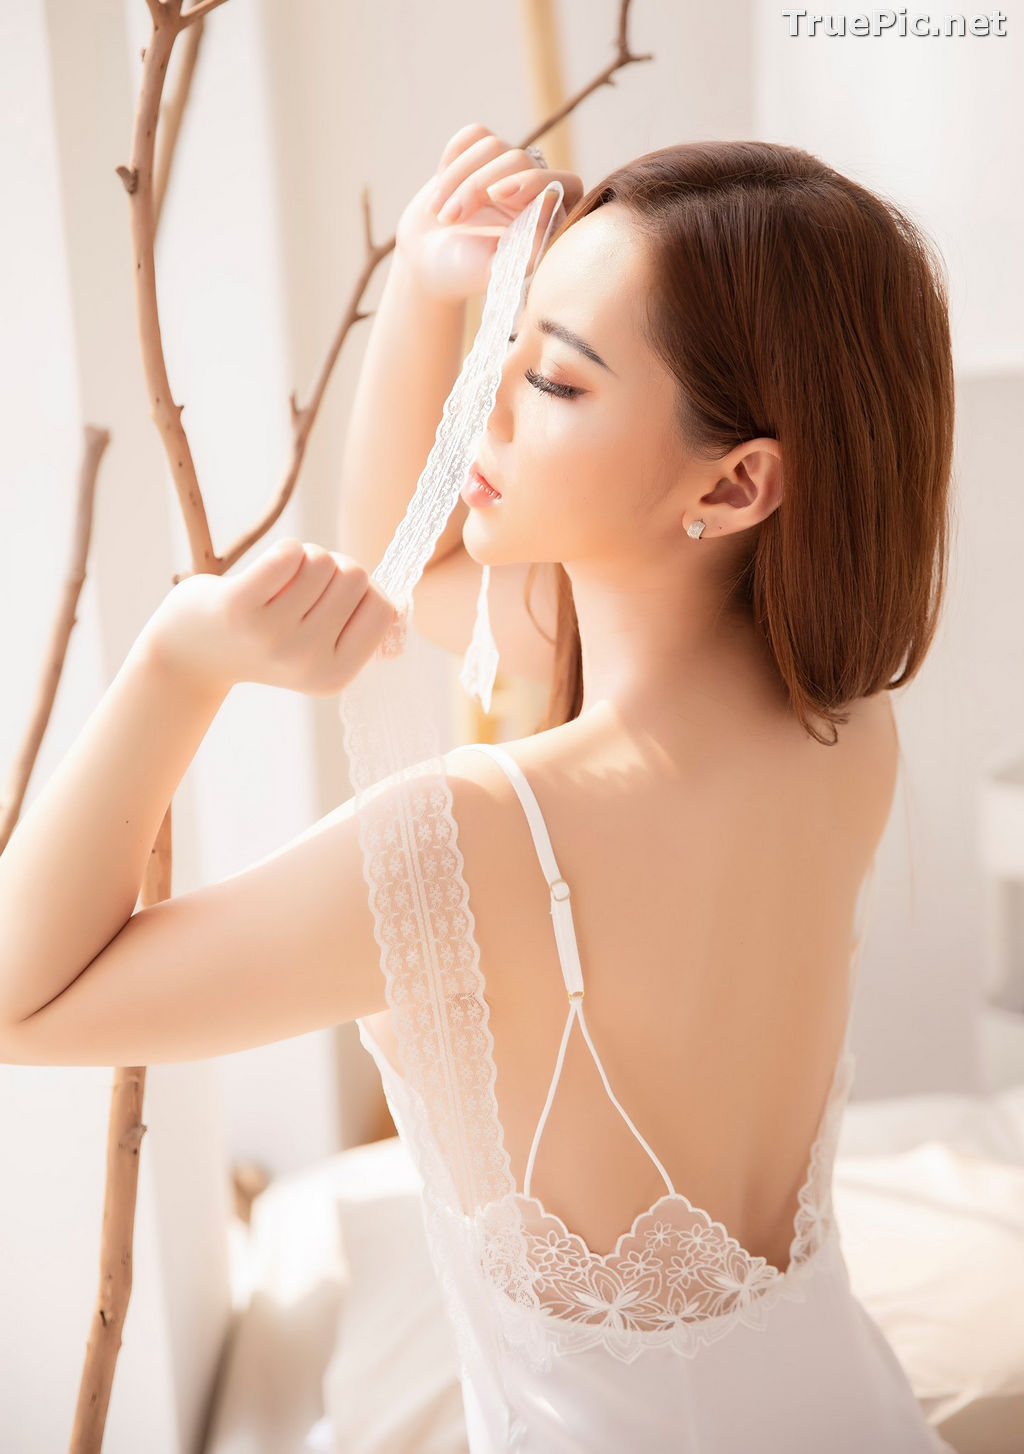 Image Vietnamese Model – Hot Beautiful Girls In White Collection #2 - TruePic.net - Picture-3